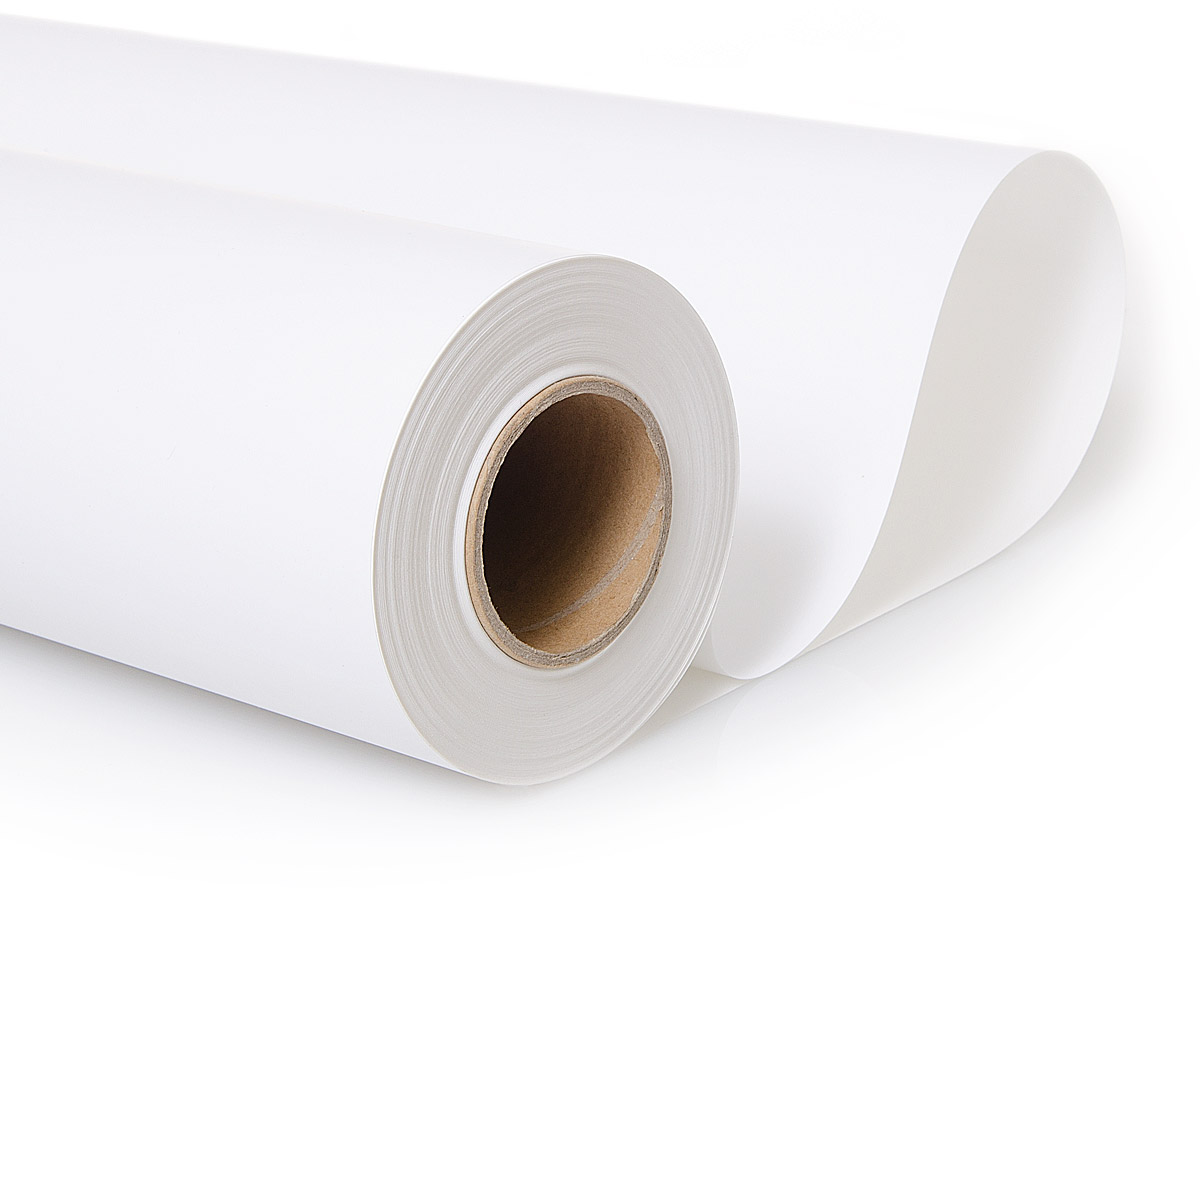 1 Rolle Sublimationspapier | Transferpapier für Sublimation | 43 cm x 100m